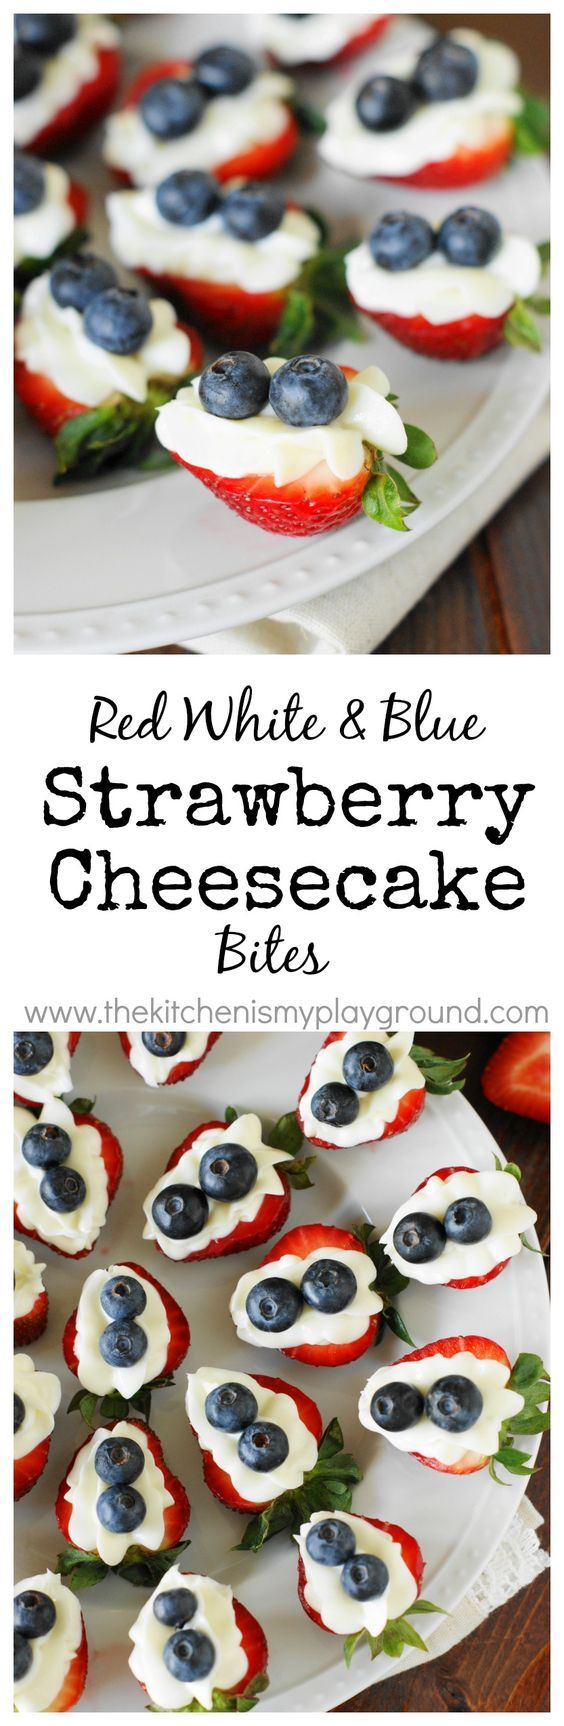 Red, White & Blue Strawberry Cheesecake Bites ~ an easy little 4th of July {or ANY time} treat. www.thekitchenismyplayground.com